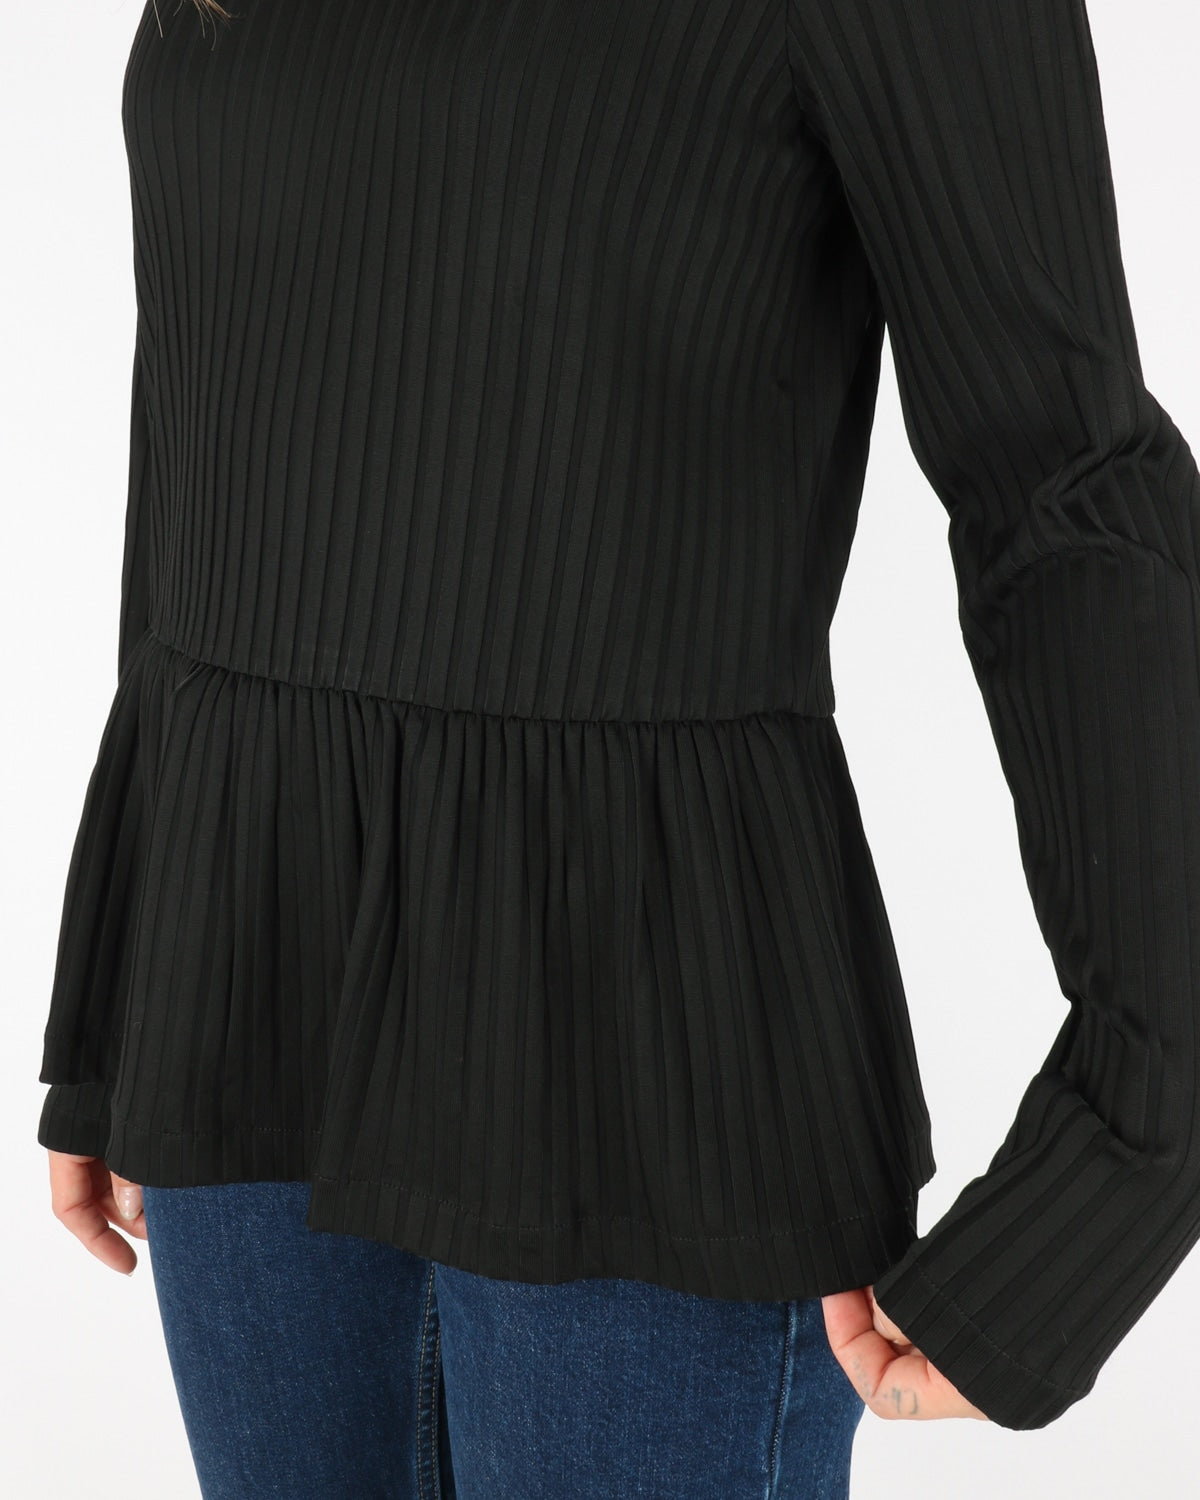 libertine libertine_focus blouse_black_2_3